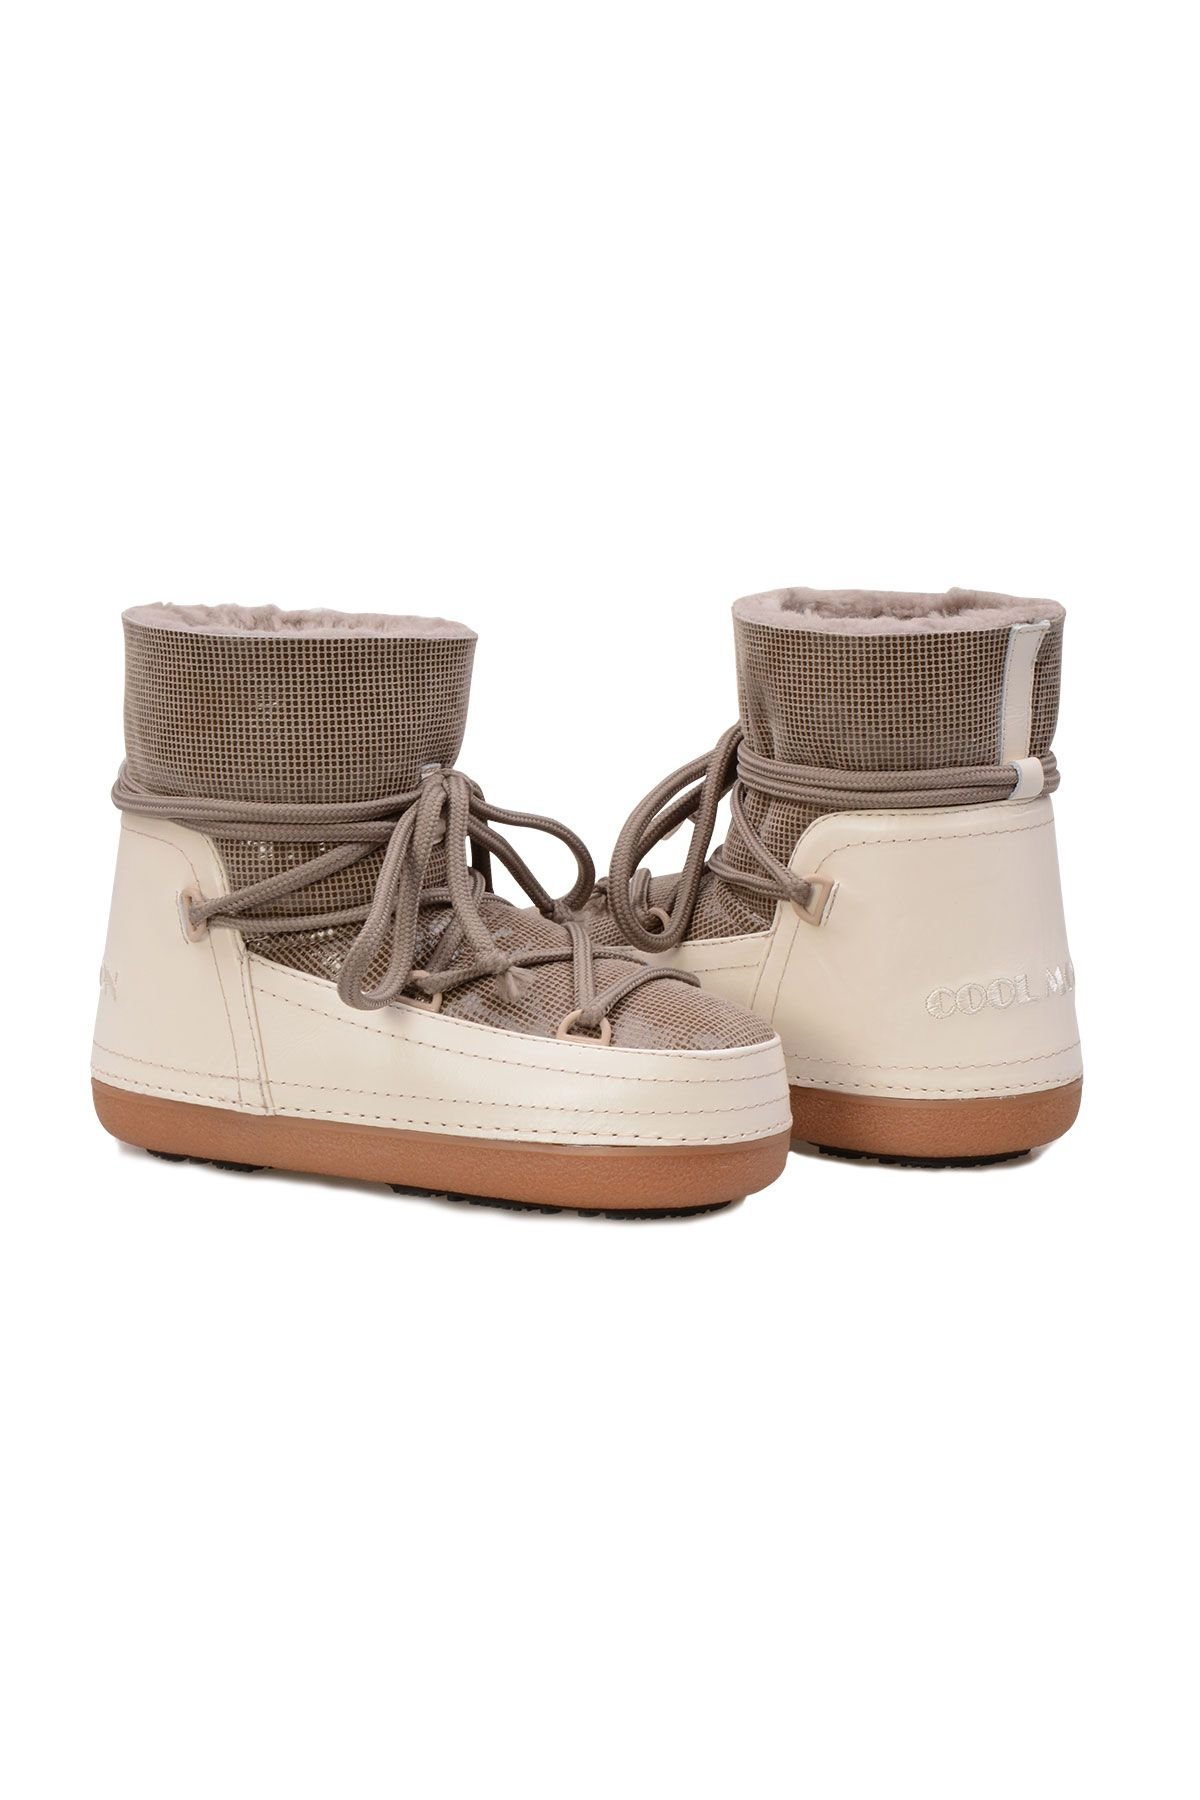 Cool Moon Genuine Sheepskin Women Snow Boots 251117 Sand-colored